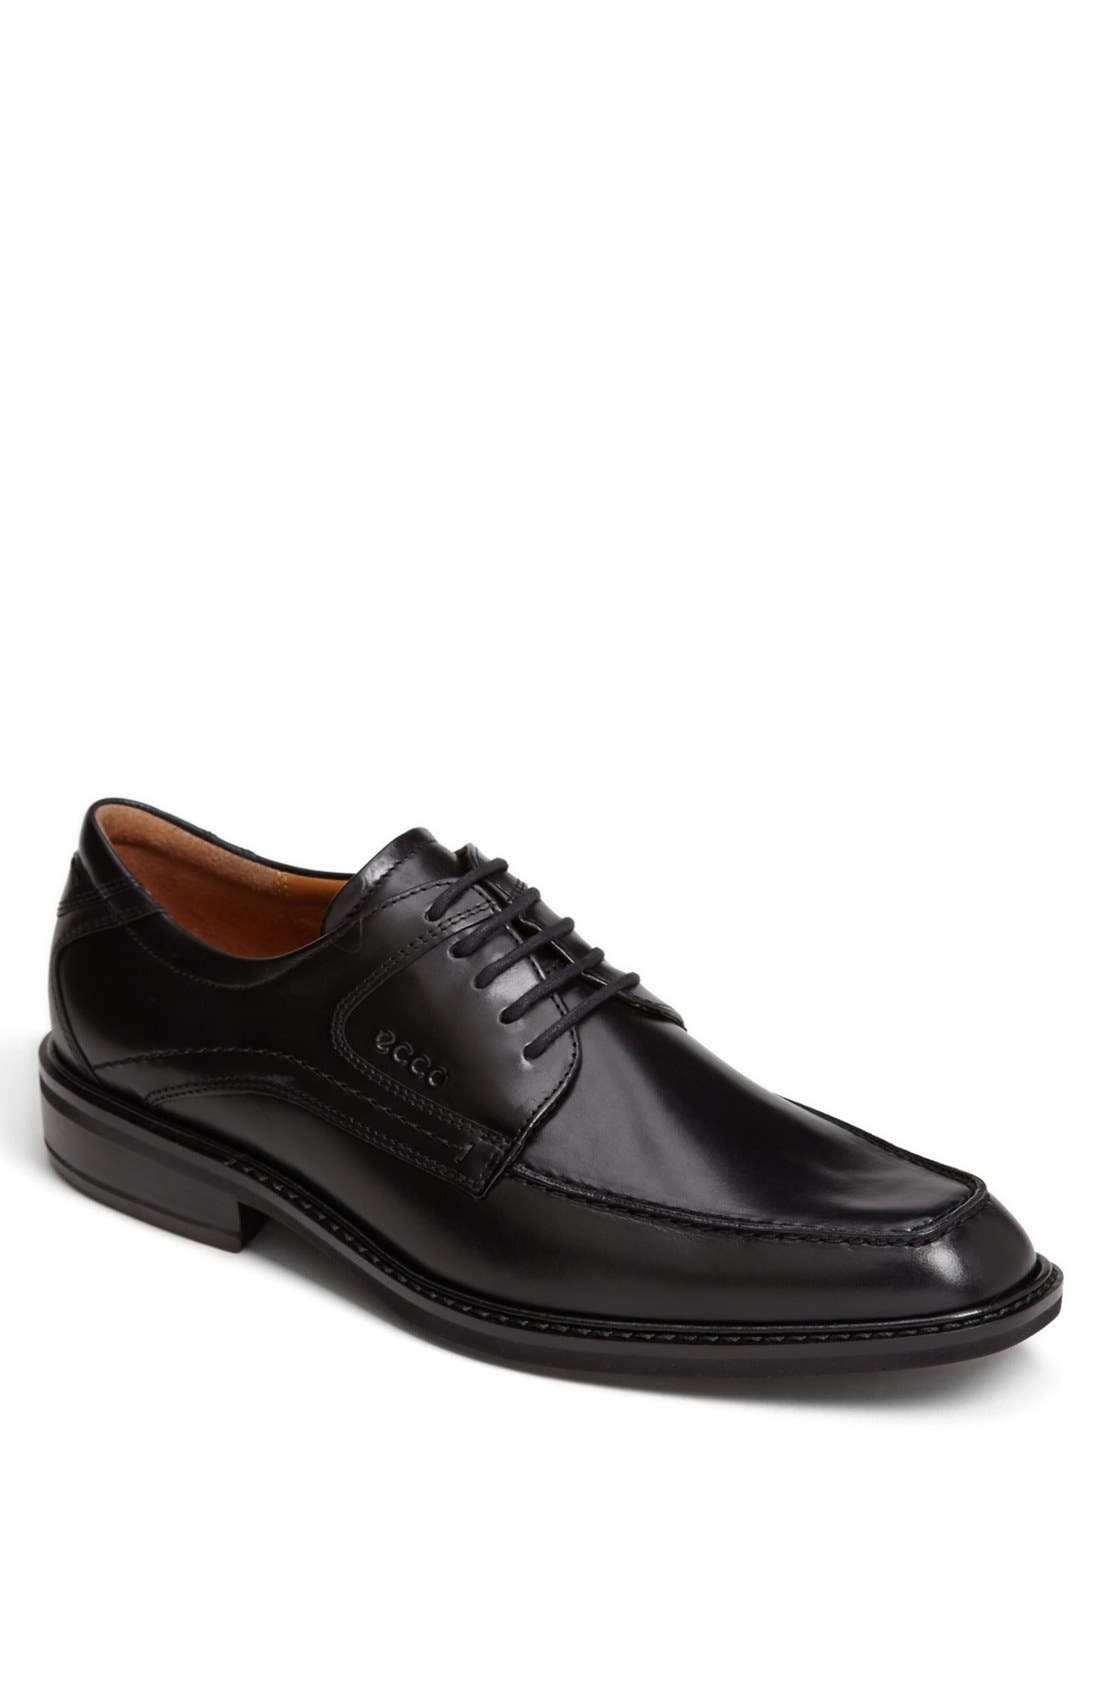 ECCO 'Windsor' Apron Toe Derby